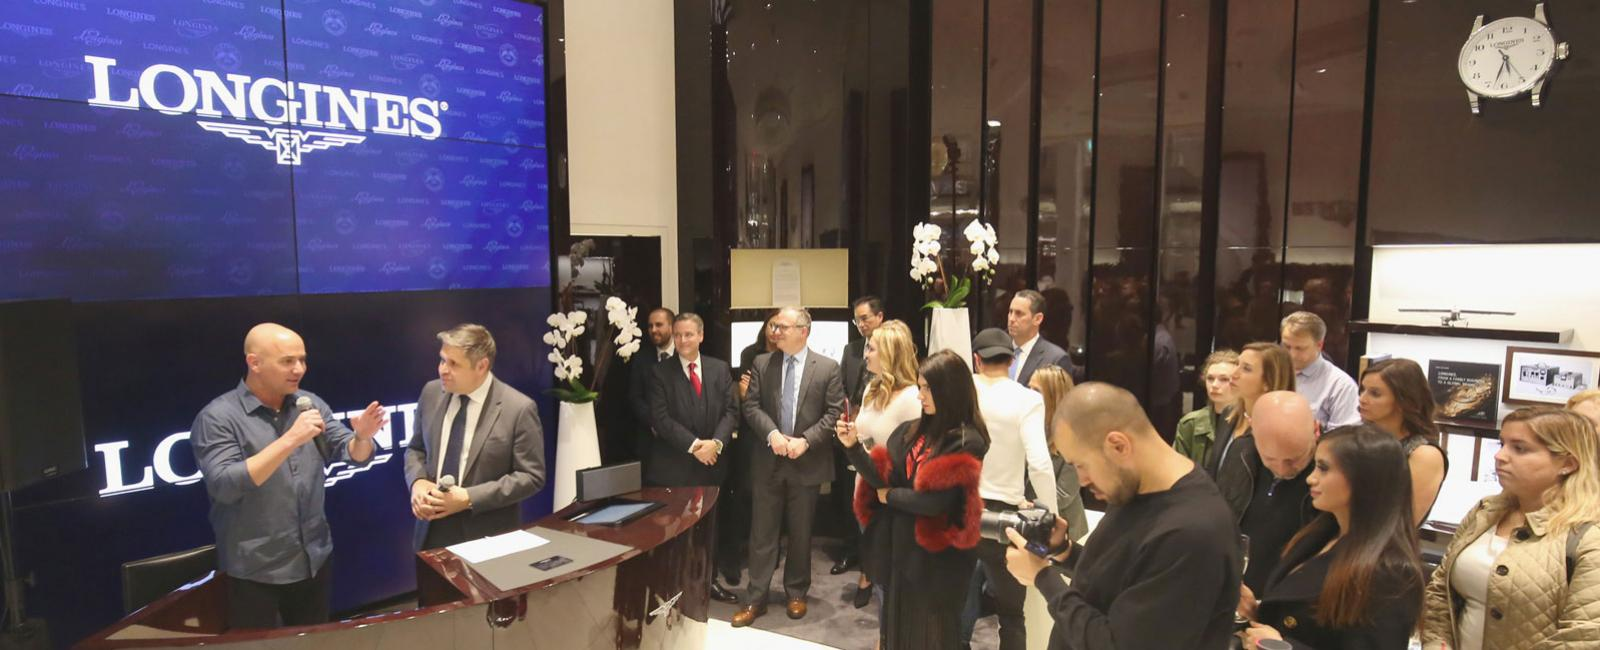 Conquest VHP launch; Miami Longines boutiques, Andre Agassi